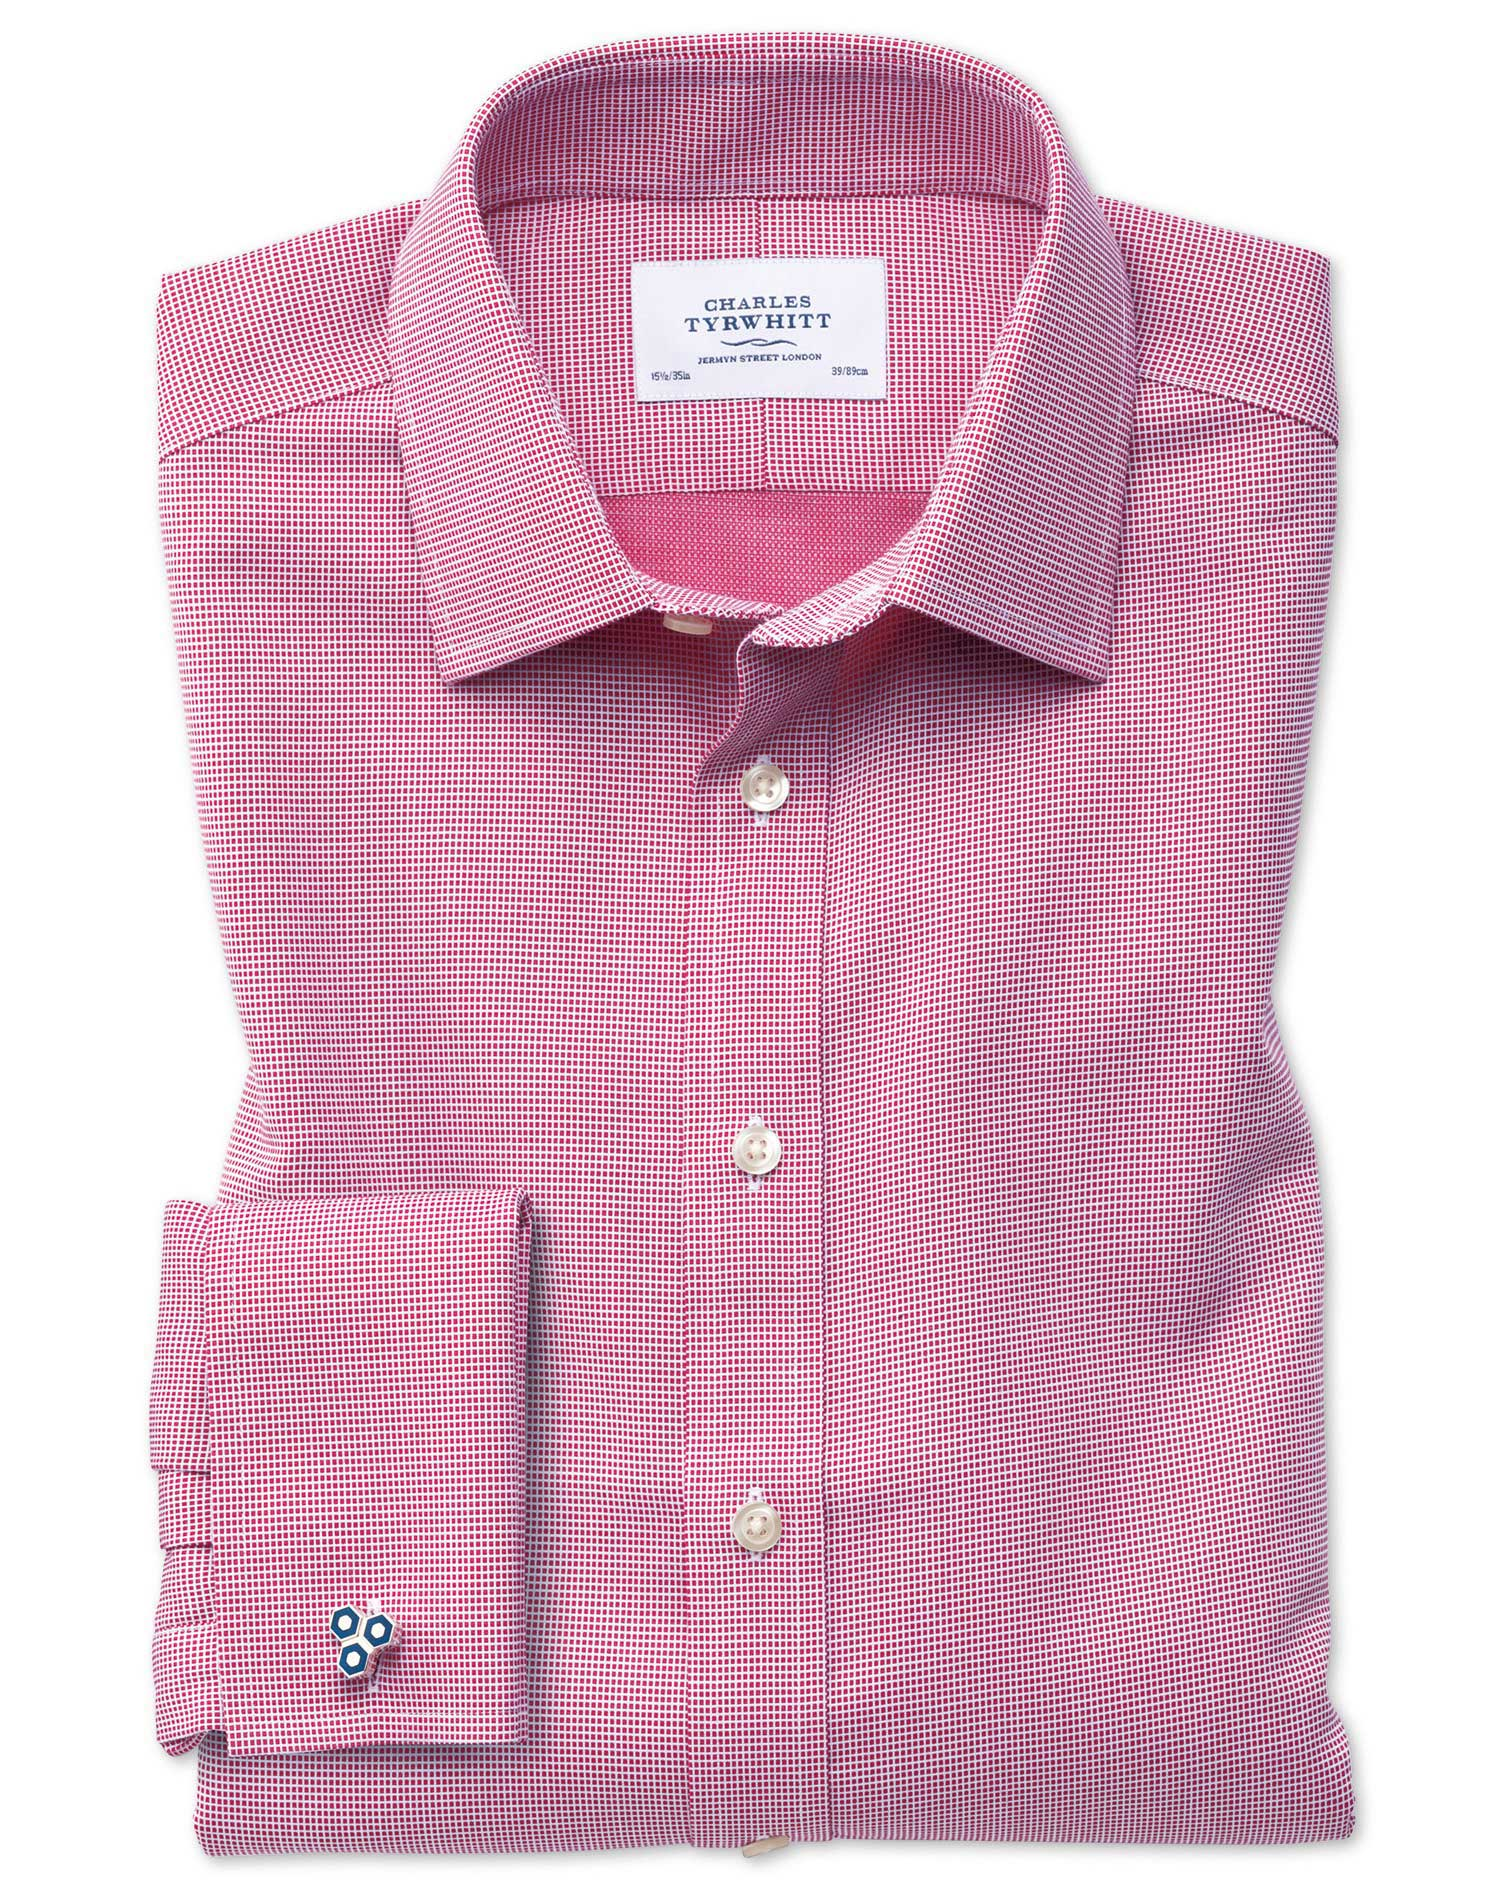 Classic Fit Non-Iron Square Weave Magenta Cotton Formal Shirt Single Cuff Size 16/33 by Charles Tyrw